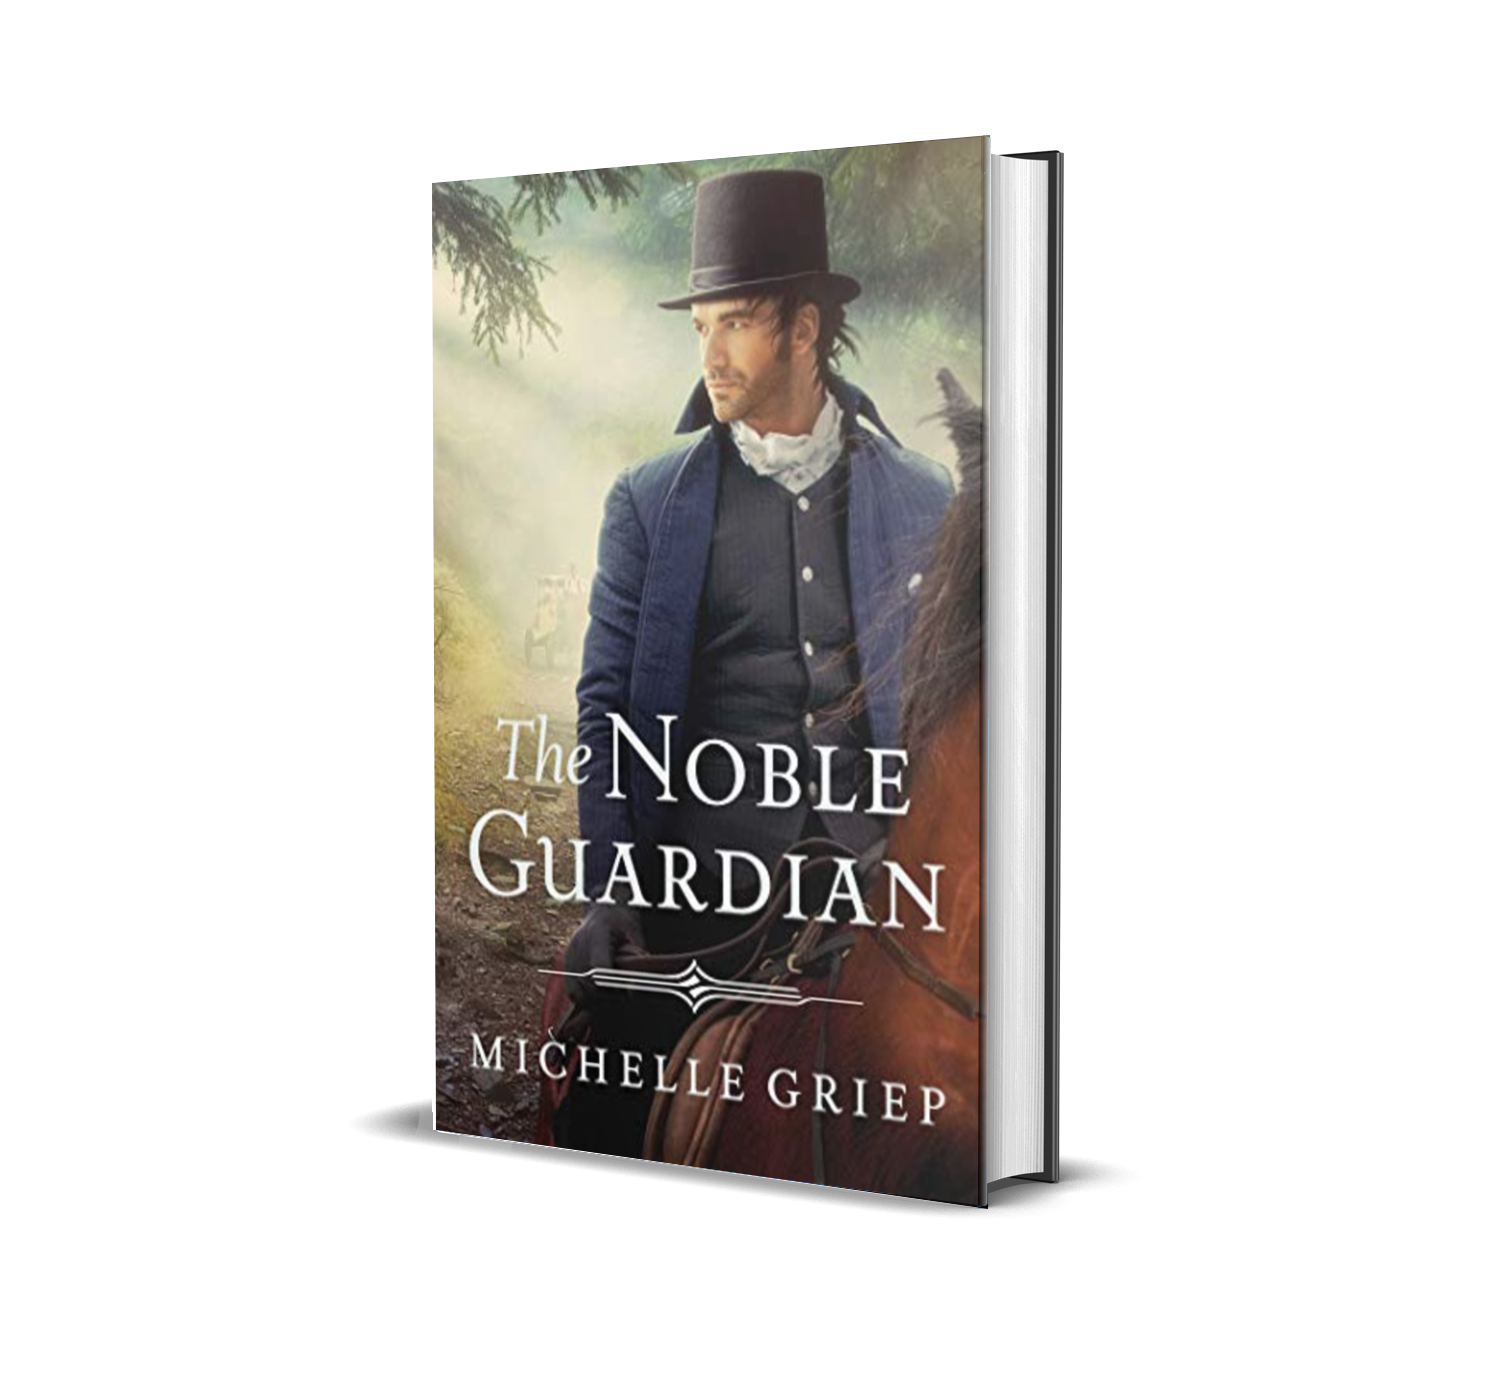 The Noble Guardian by Michelle Griep